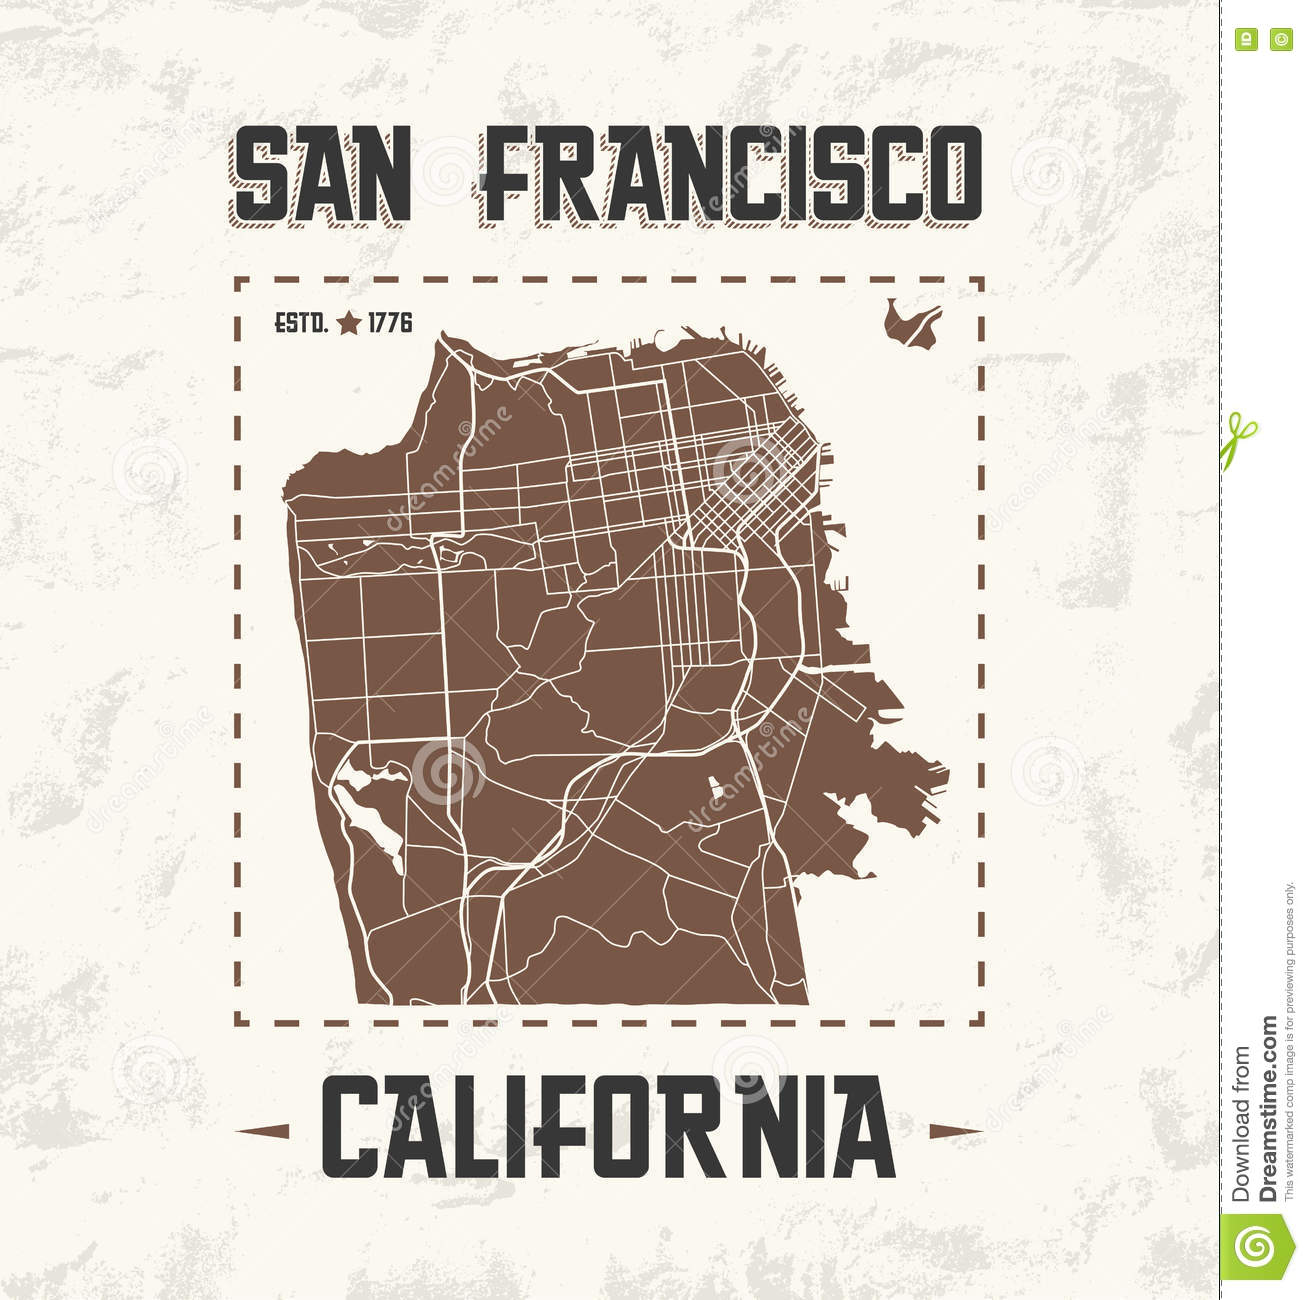 San Francisco Vintage Tshirt Graphic Design With City Map Stock - San francisco map vector free download